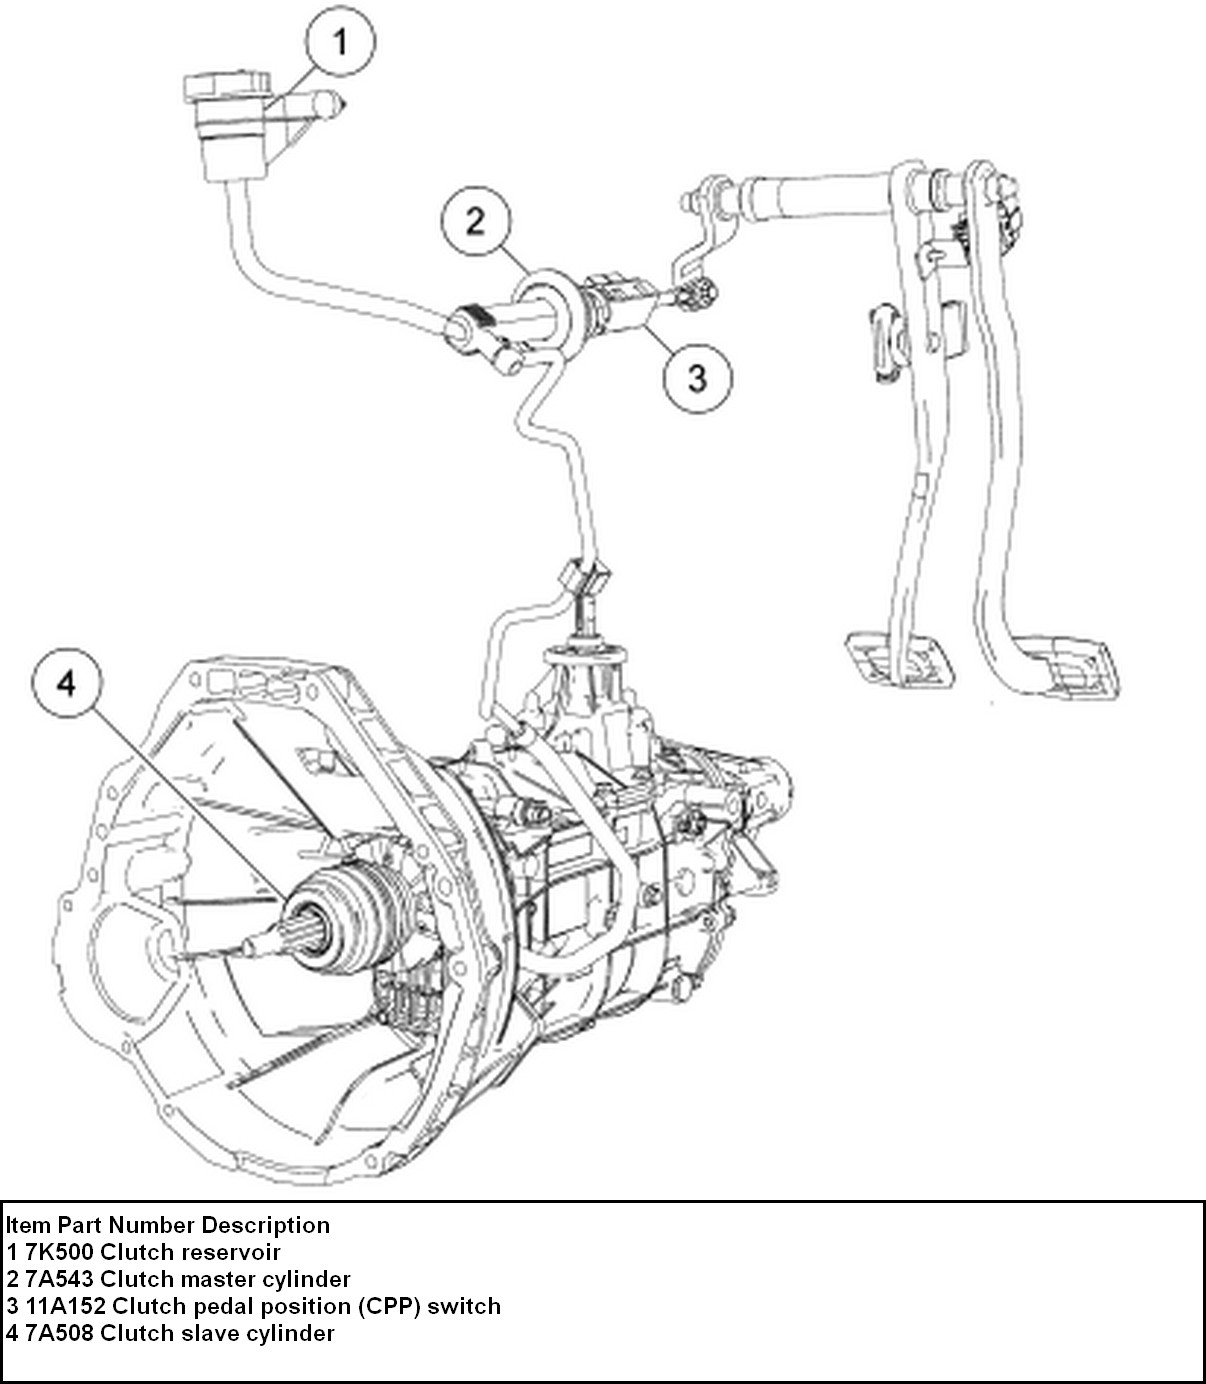 Is The Clutch Pedal On A 2007 F 150 5 Speed Manual